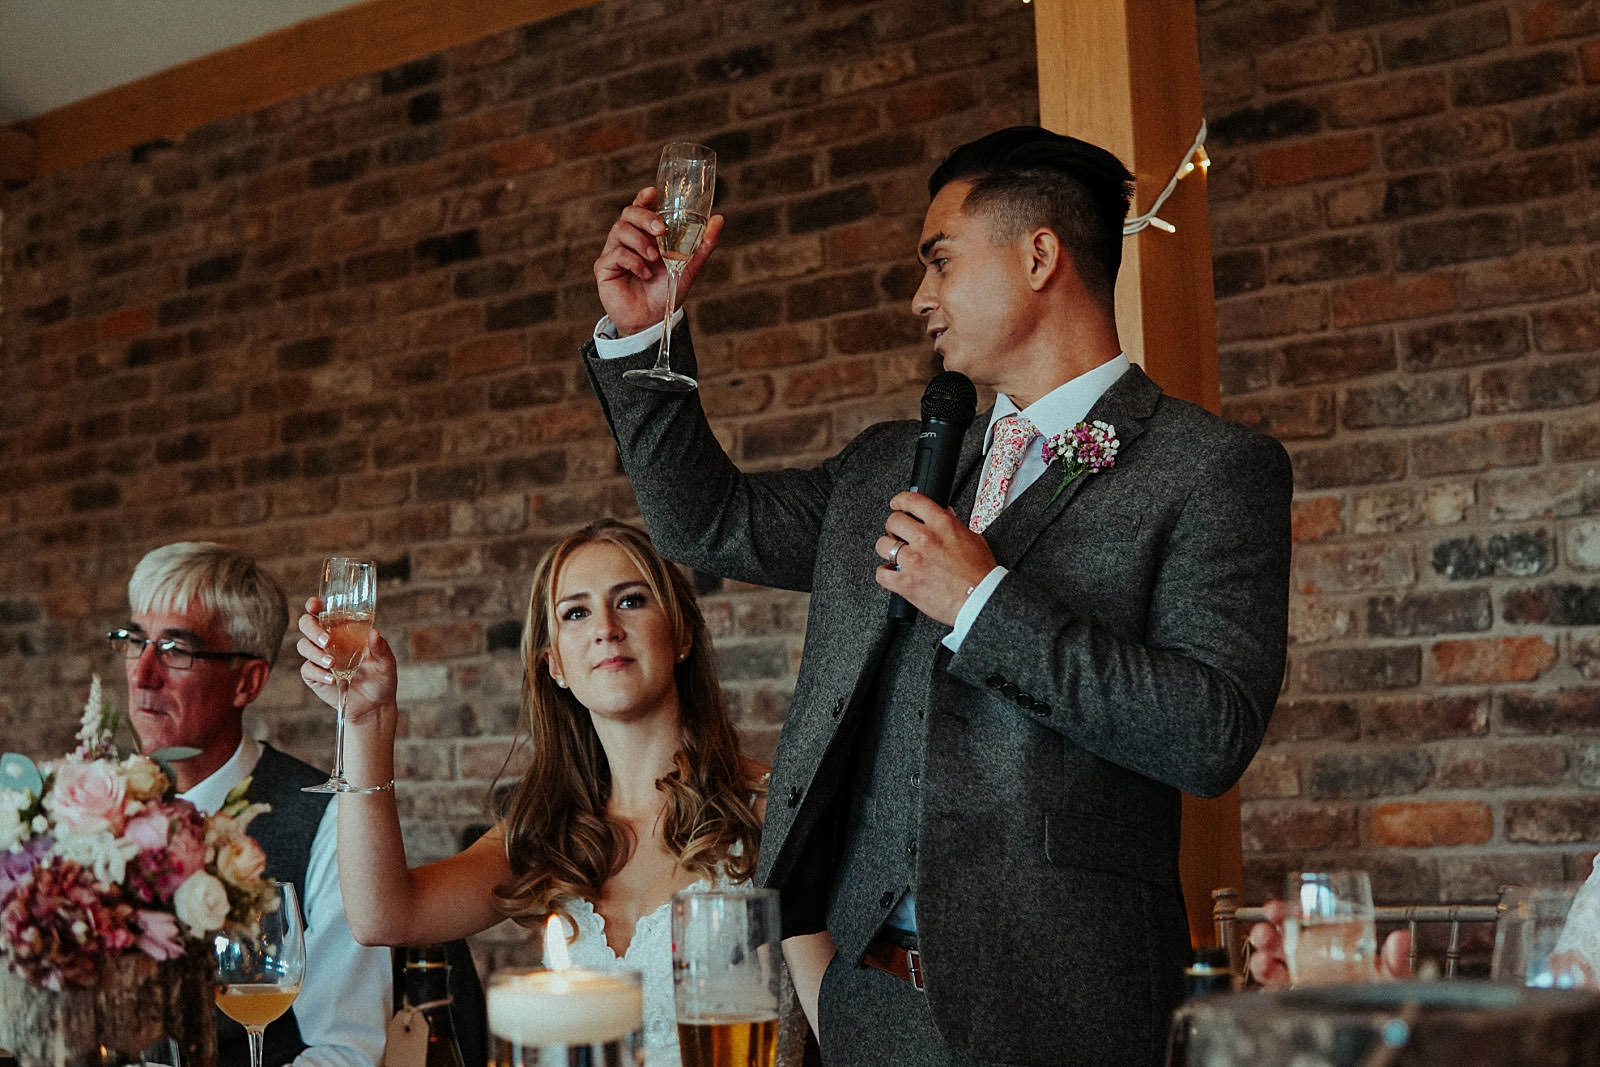 groom raising a glass to the wedding guests